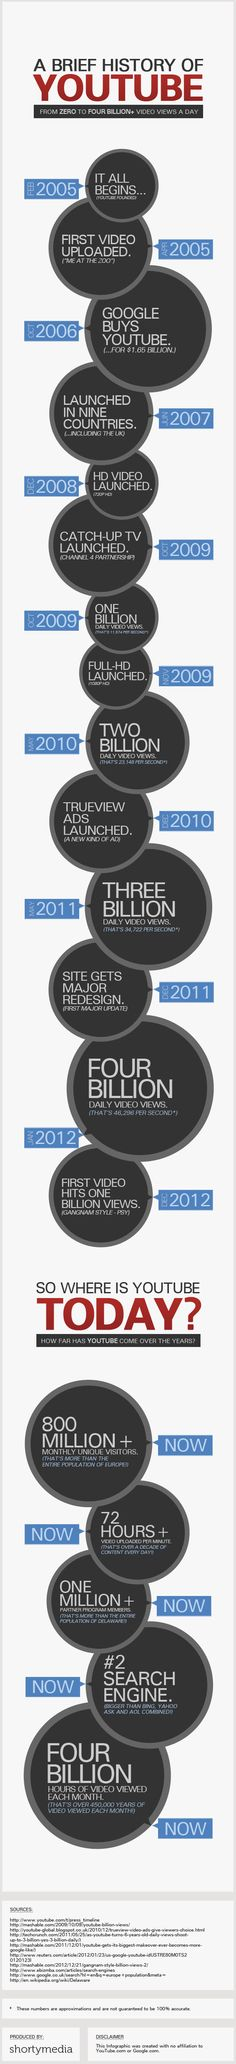 The Facts and Figures on #YouTube in 2013 #Infographic